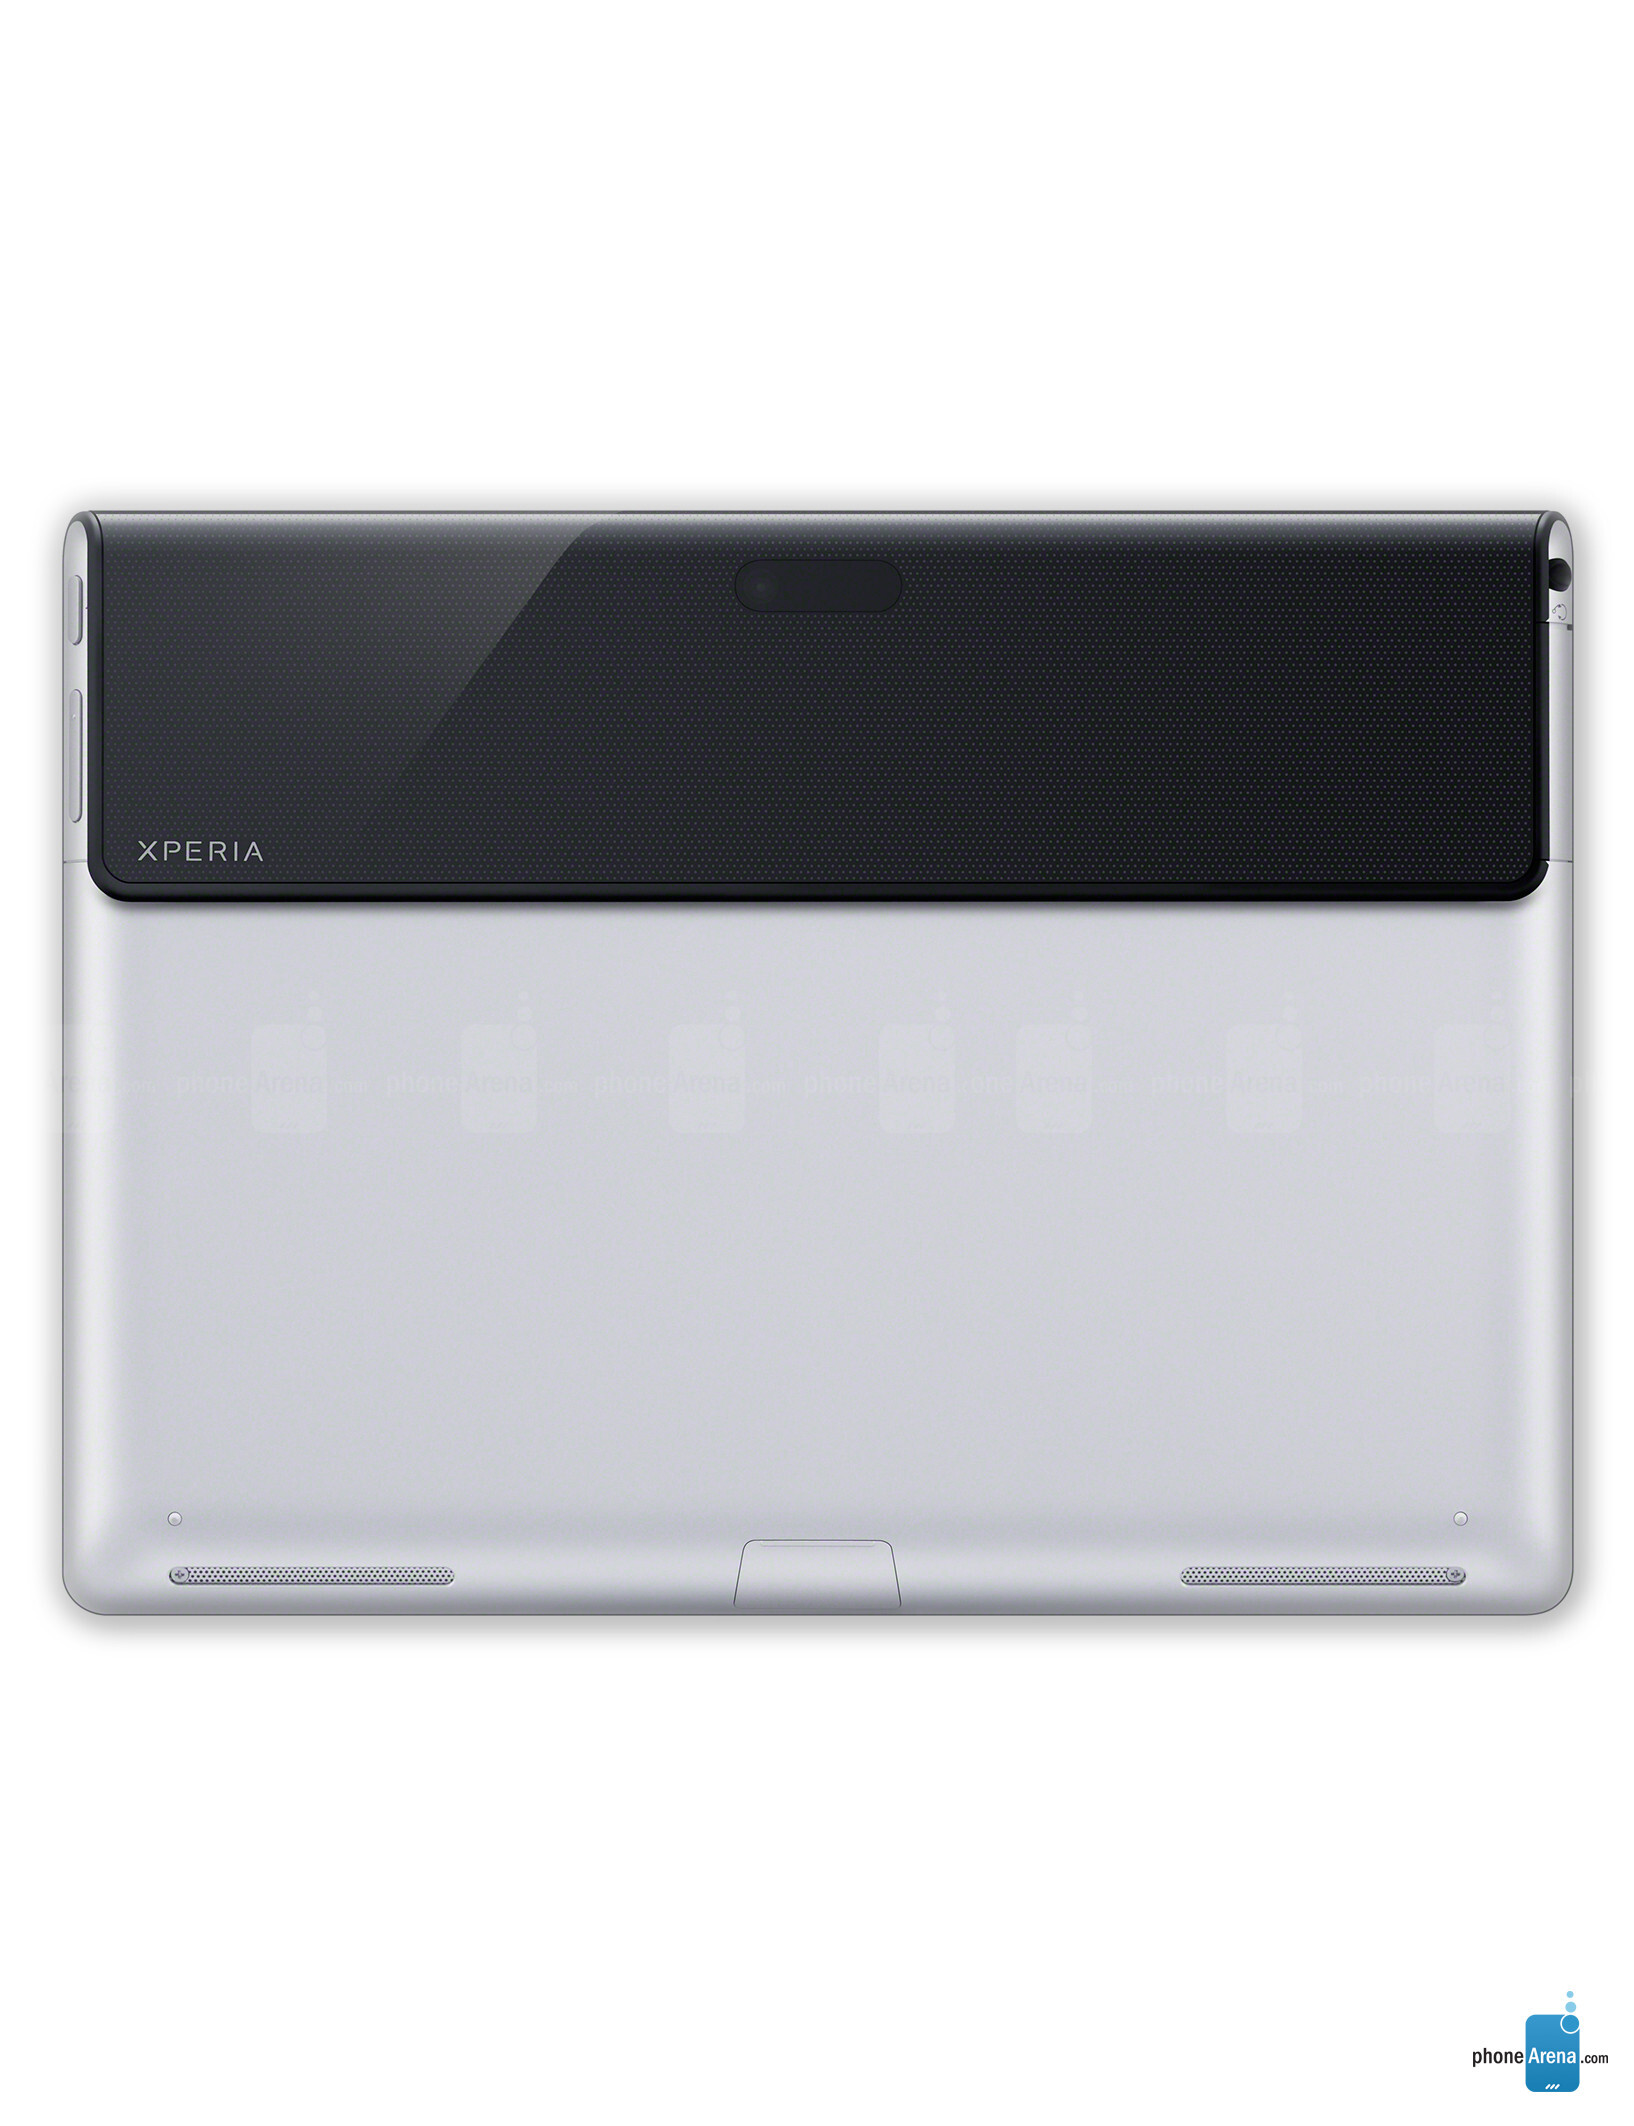 sony xperia tablet s specs. Black Bedroom Furniture Sets. Home Design Ideas